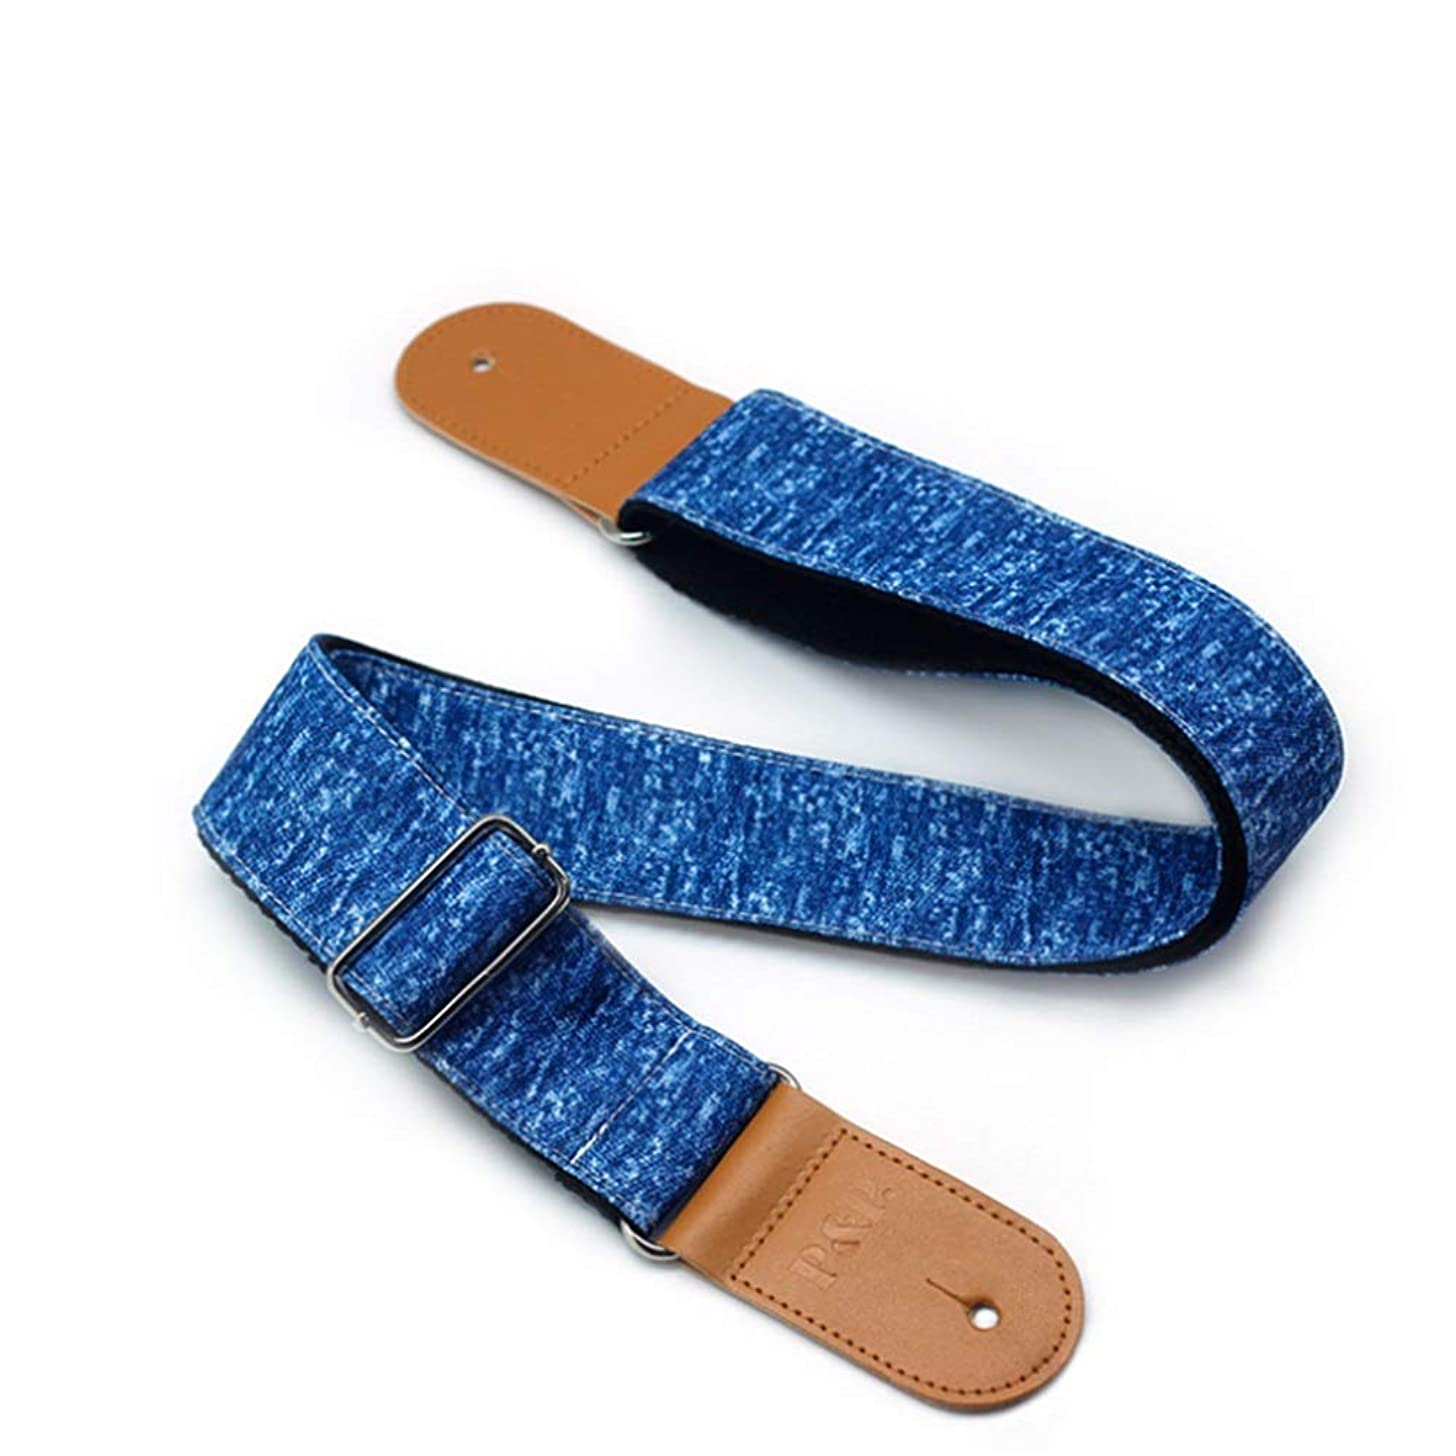 Handmade Guitar Strap 82-138CM Adjustable Length 2 Inches Wide Woven Cotton Guitar Strap With Leather Ends For Men Women Kids Electric Acoustic And Bass Guitars For Electric, Acoustic, and Bass Guitar